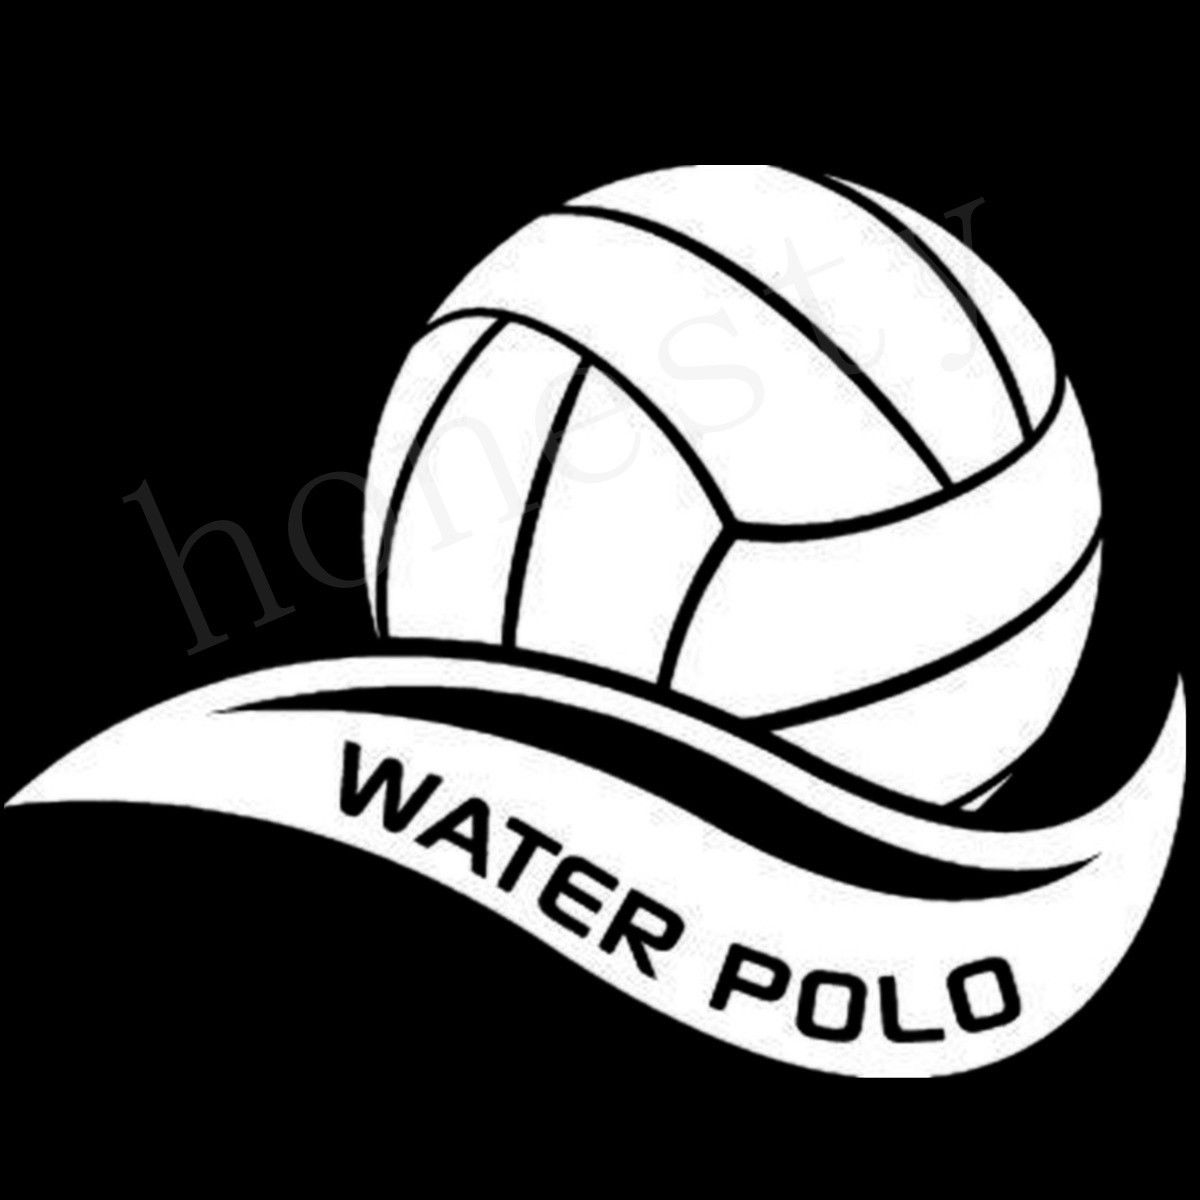 Water polo ball team sports water swim h2o car decals stickers sticker gift in car stickers from automobiles motorcycles on aliexpress com alibaba